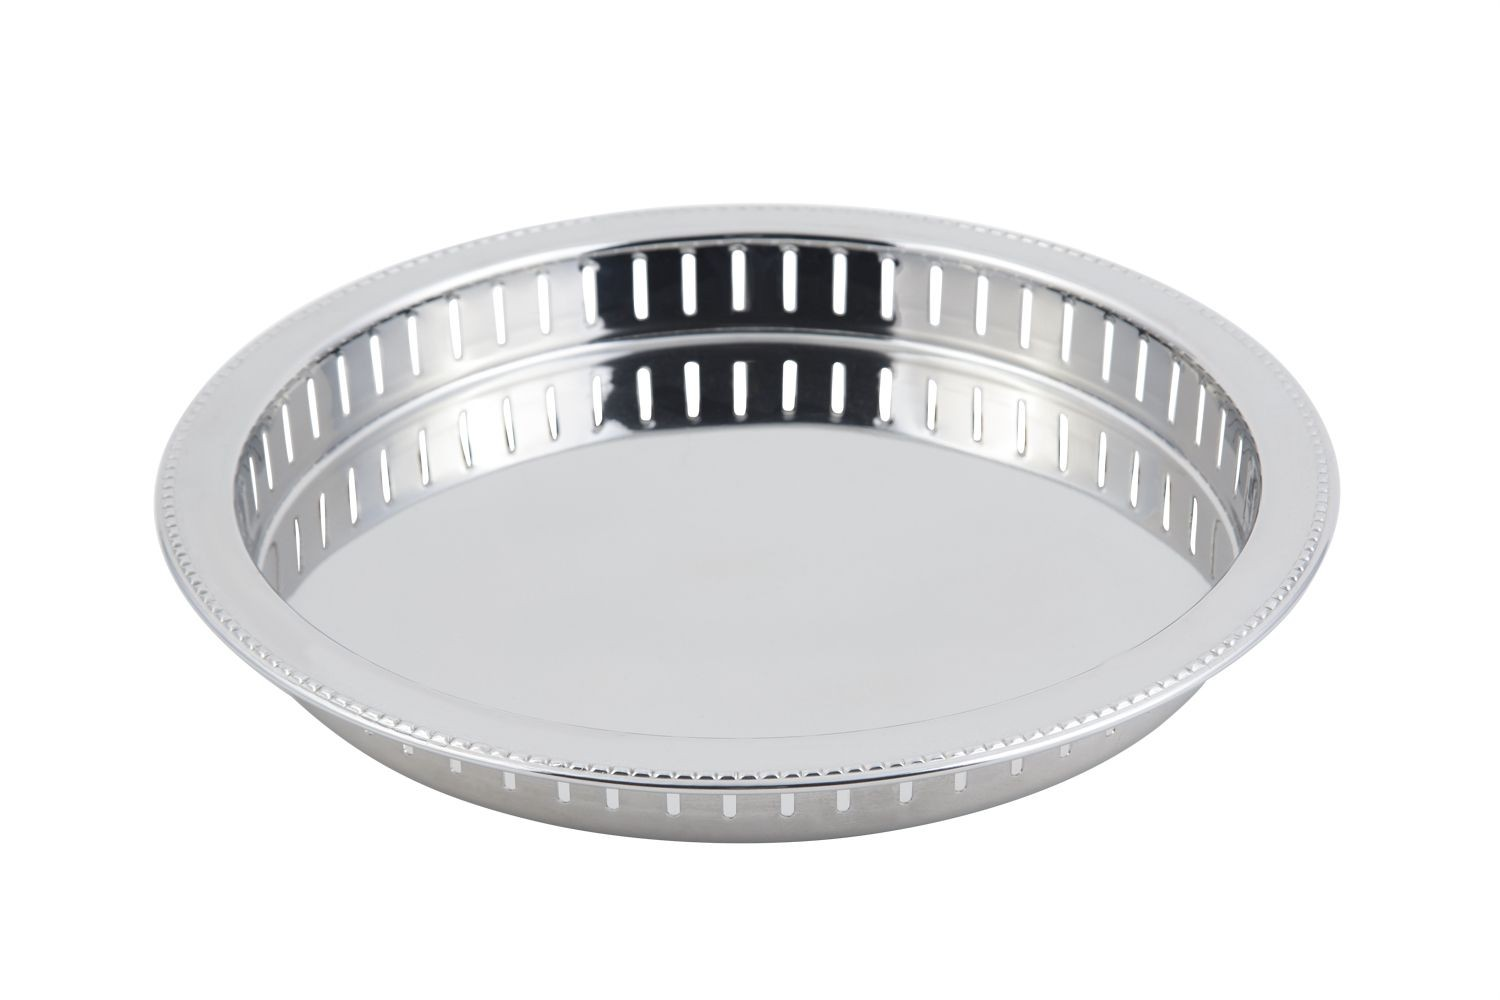 "Bon Chef 61340 Stainless Steel Bar Tray with Bead Rim, 11 1/2"" Dia."